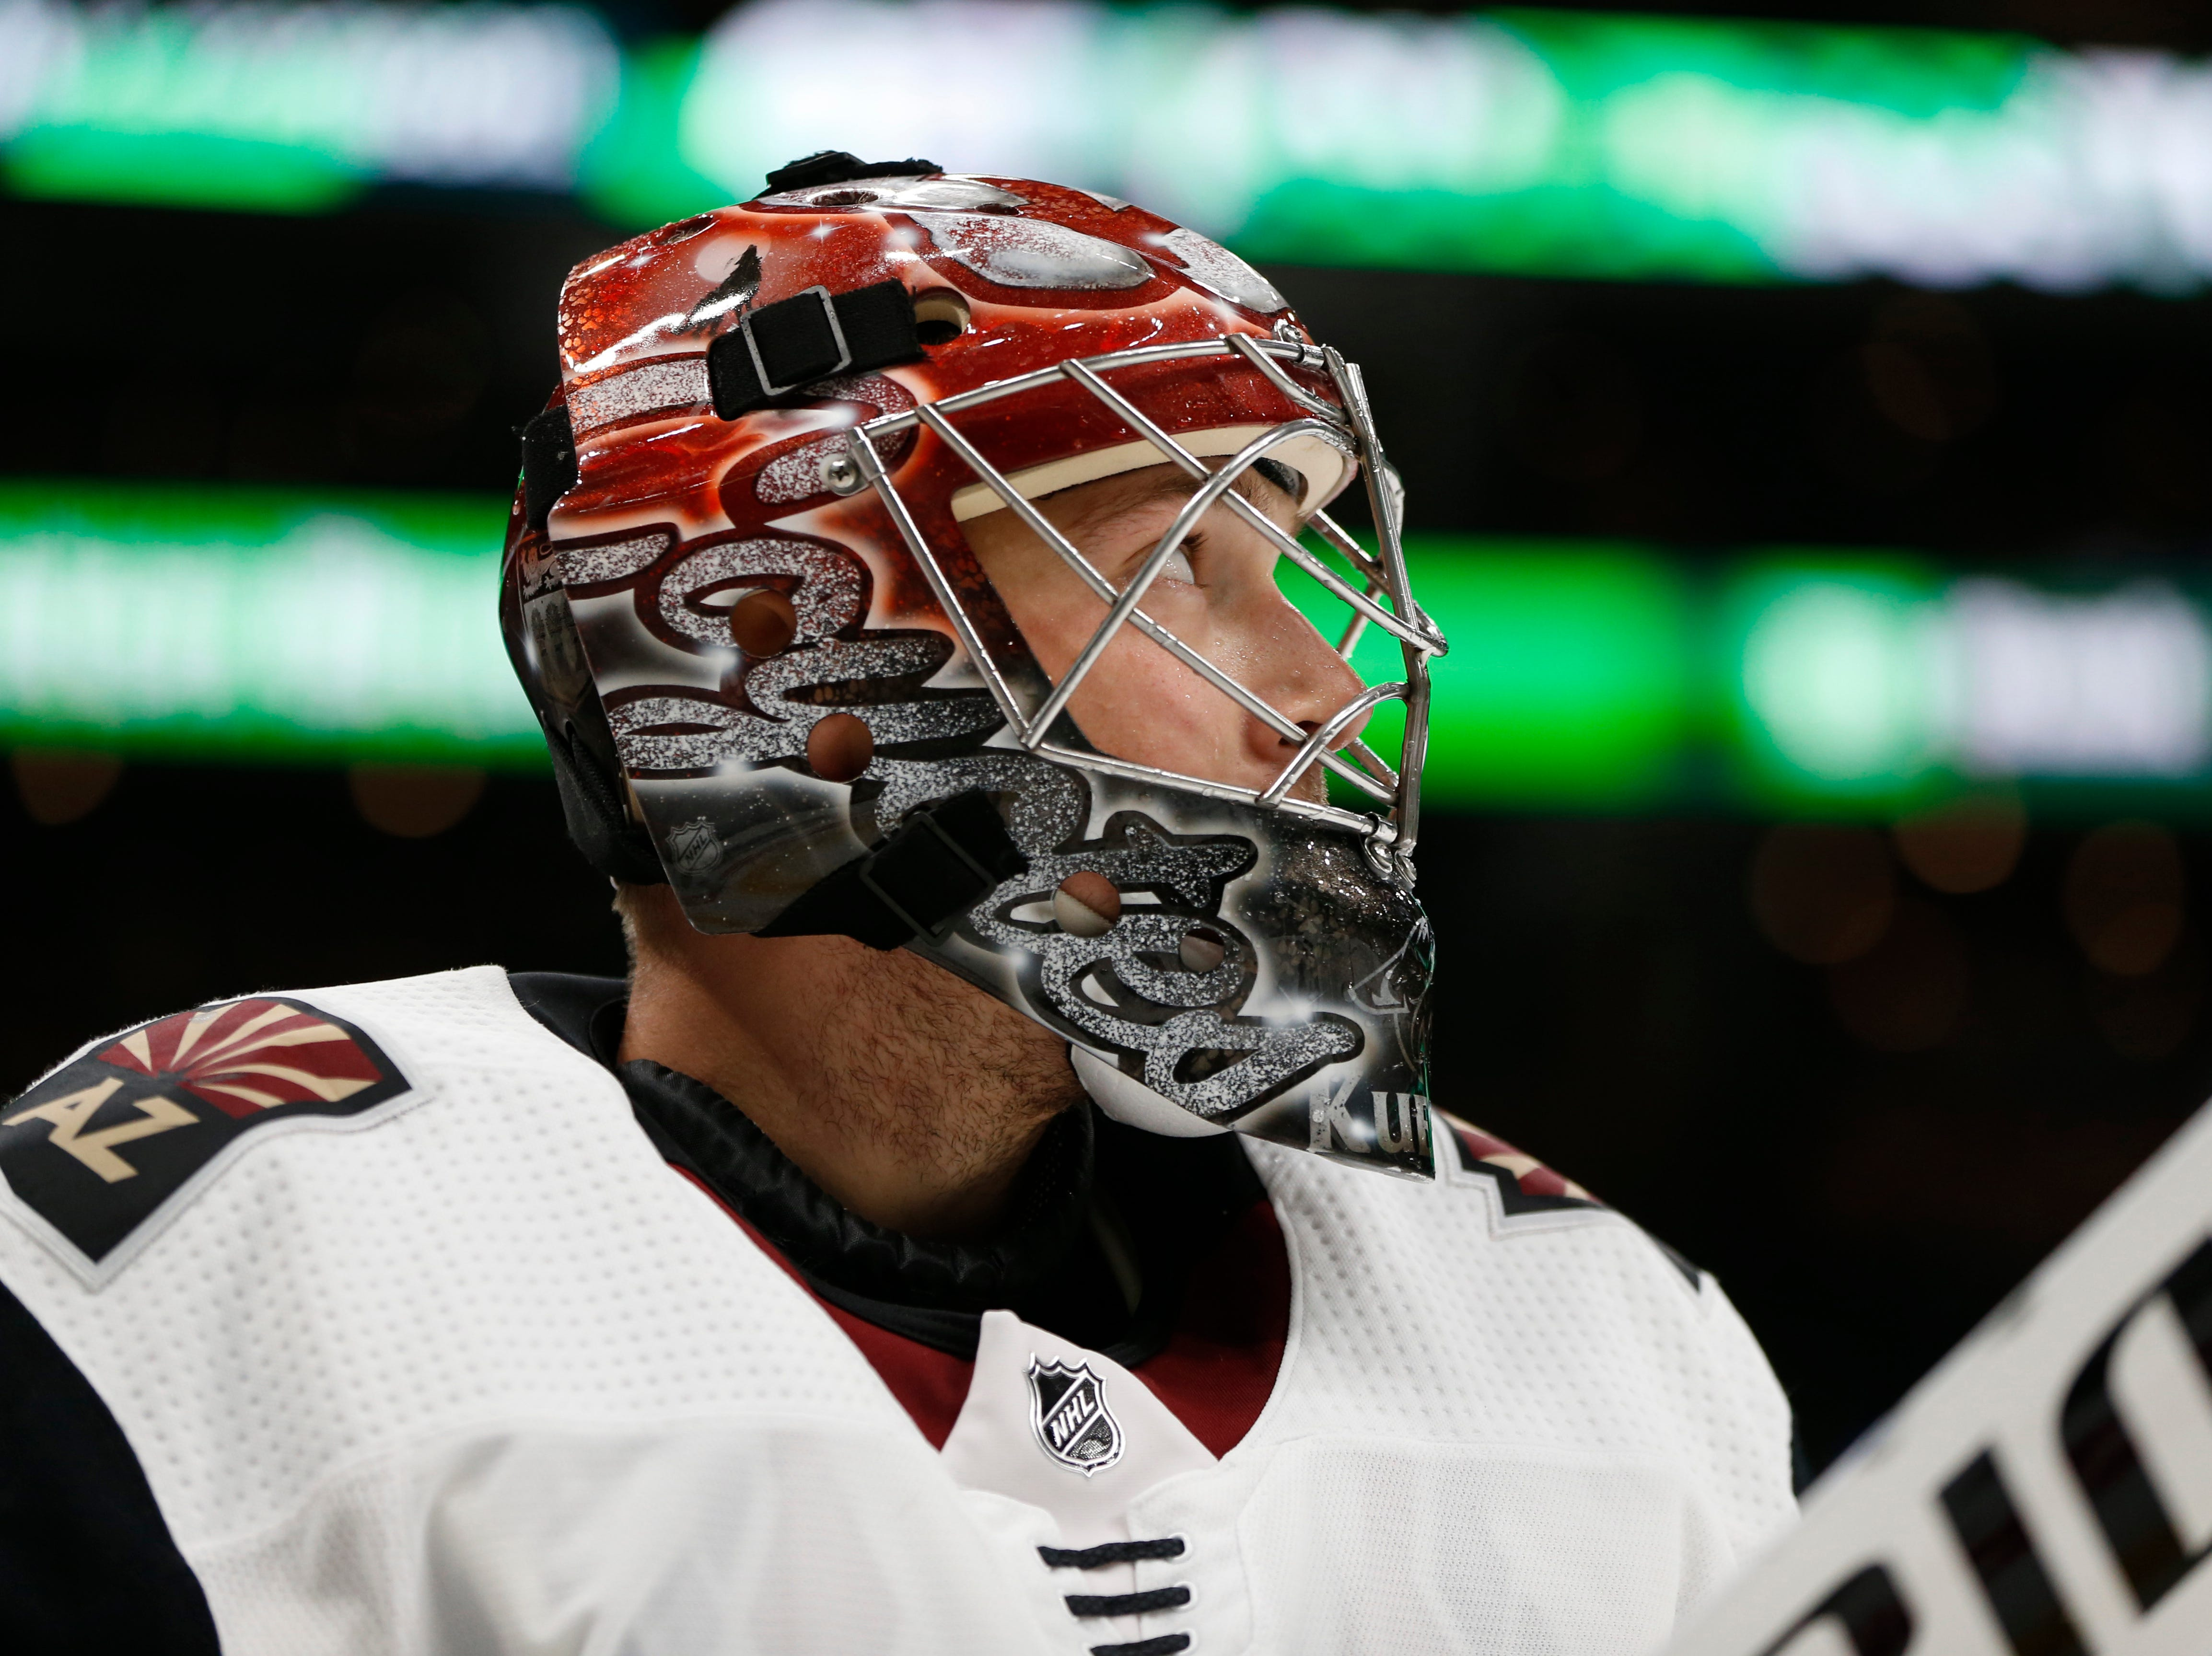 Dec 11, 2018; Boston, MA, USA; Arizona Coyotes goaltender Darcy Kuemper (35) reacts after giving up a goal to the Boston Bruins during the second period at TD Garden. Mandatory Credit: Greg M. Cooper-USA TODAY Sports